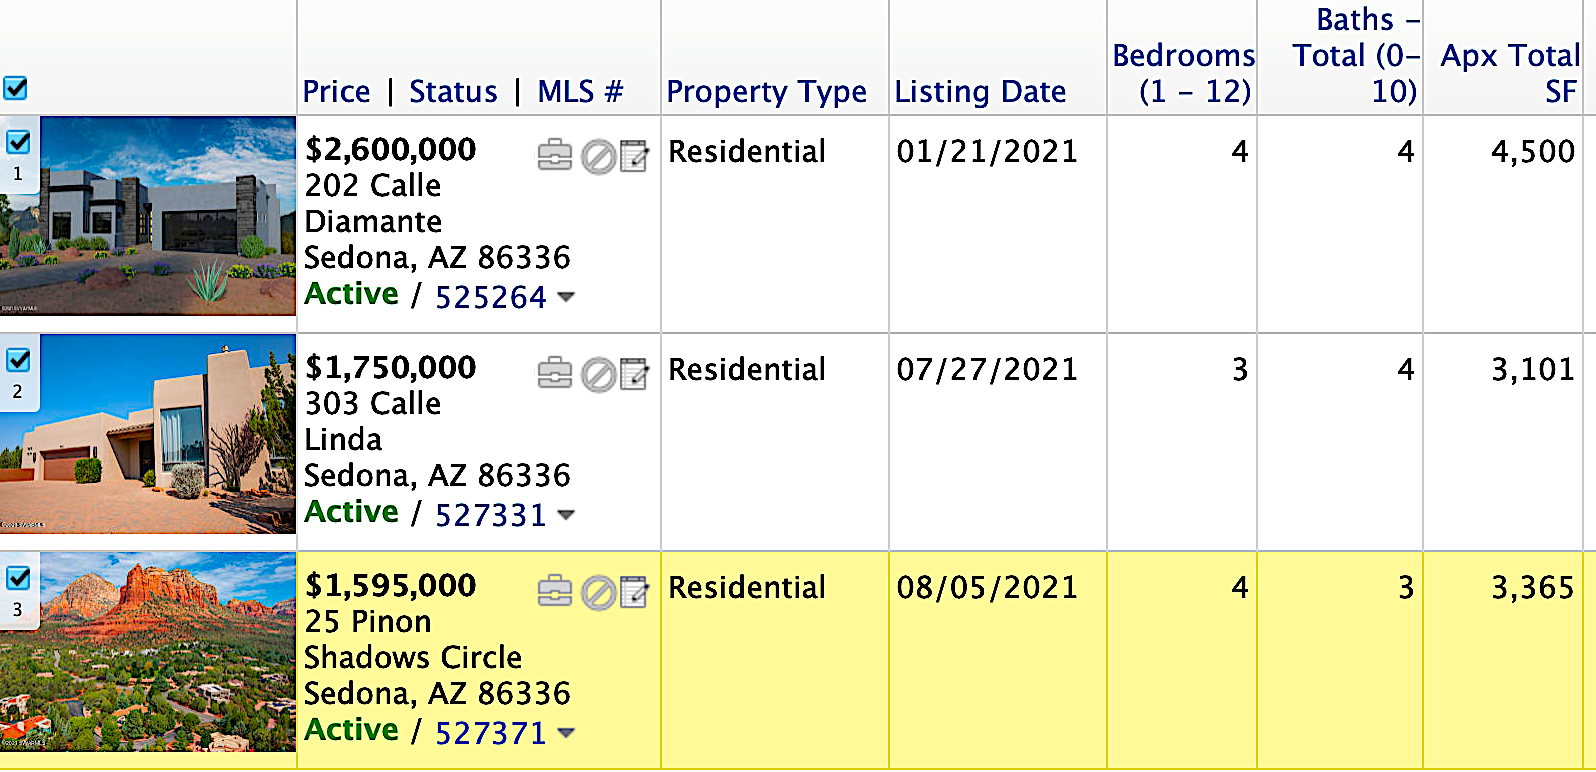 Soldiers Pass Sedona - Homes for sale August 2021